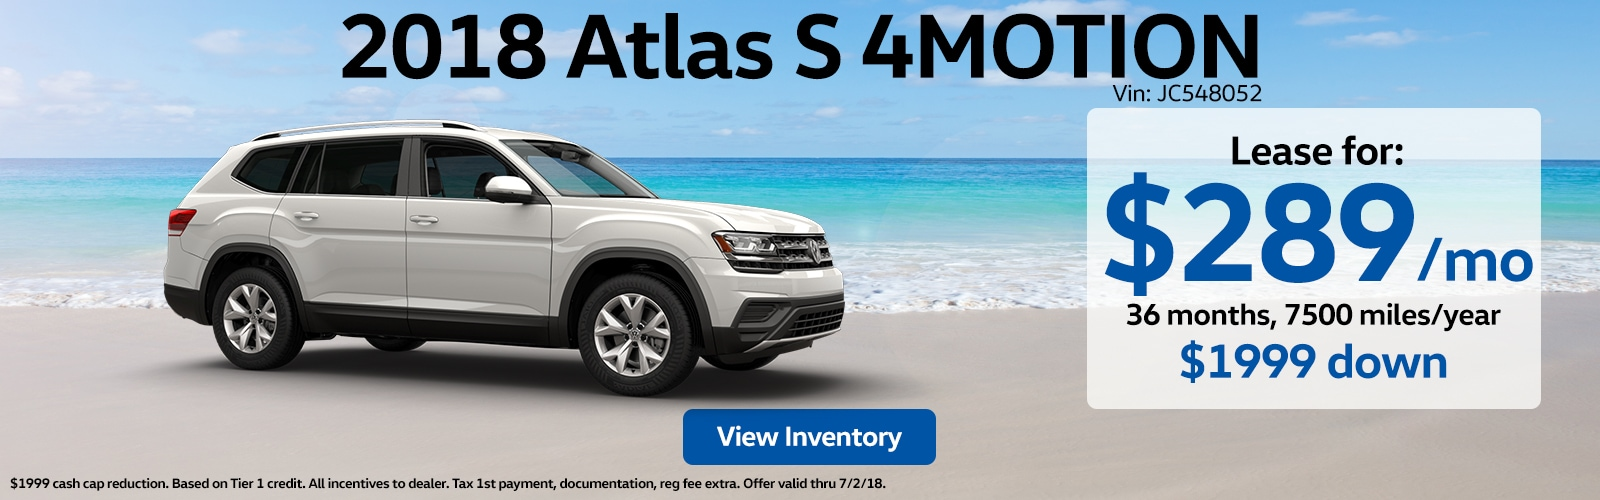 dealers a lease north of tiguan suv at massachusetts local award atlas vw your vs suvs ma htm dealership volkswagen attleboro winning in